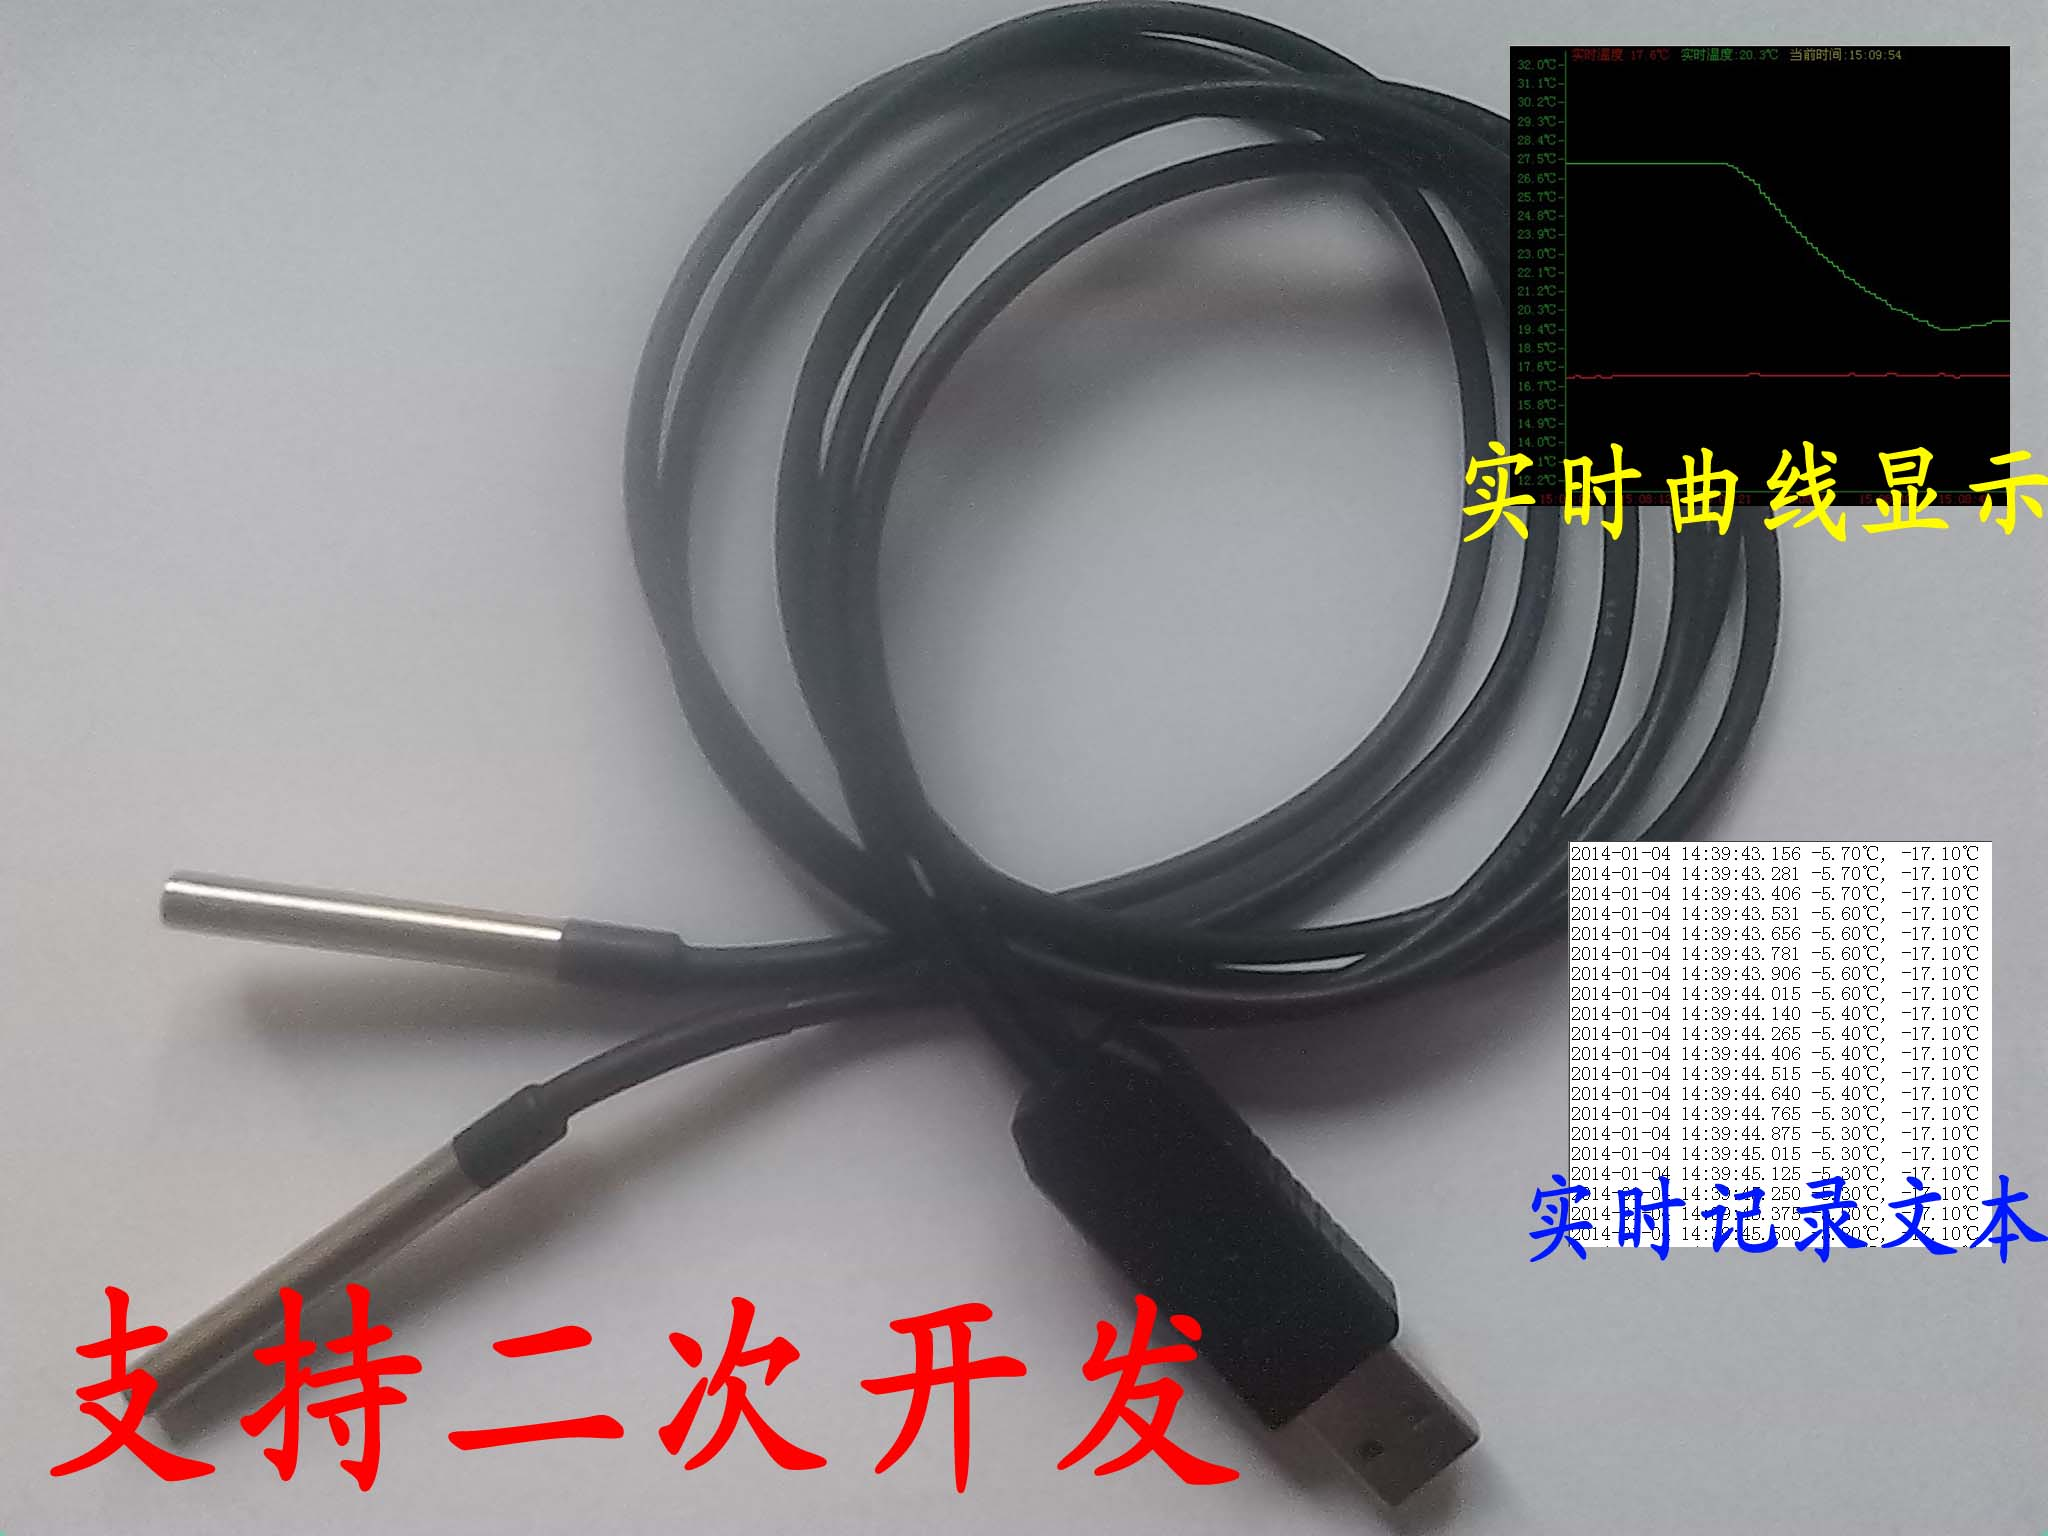 Details about  /Building Hook Steel Wire Hook 21cm micro tech for construction site Screwdriver